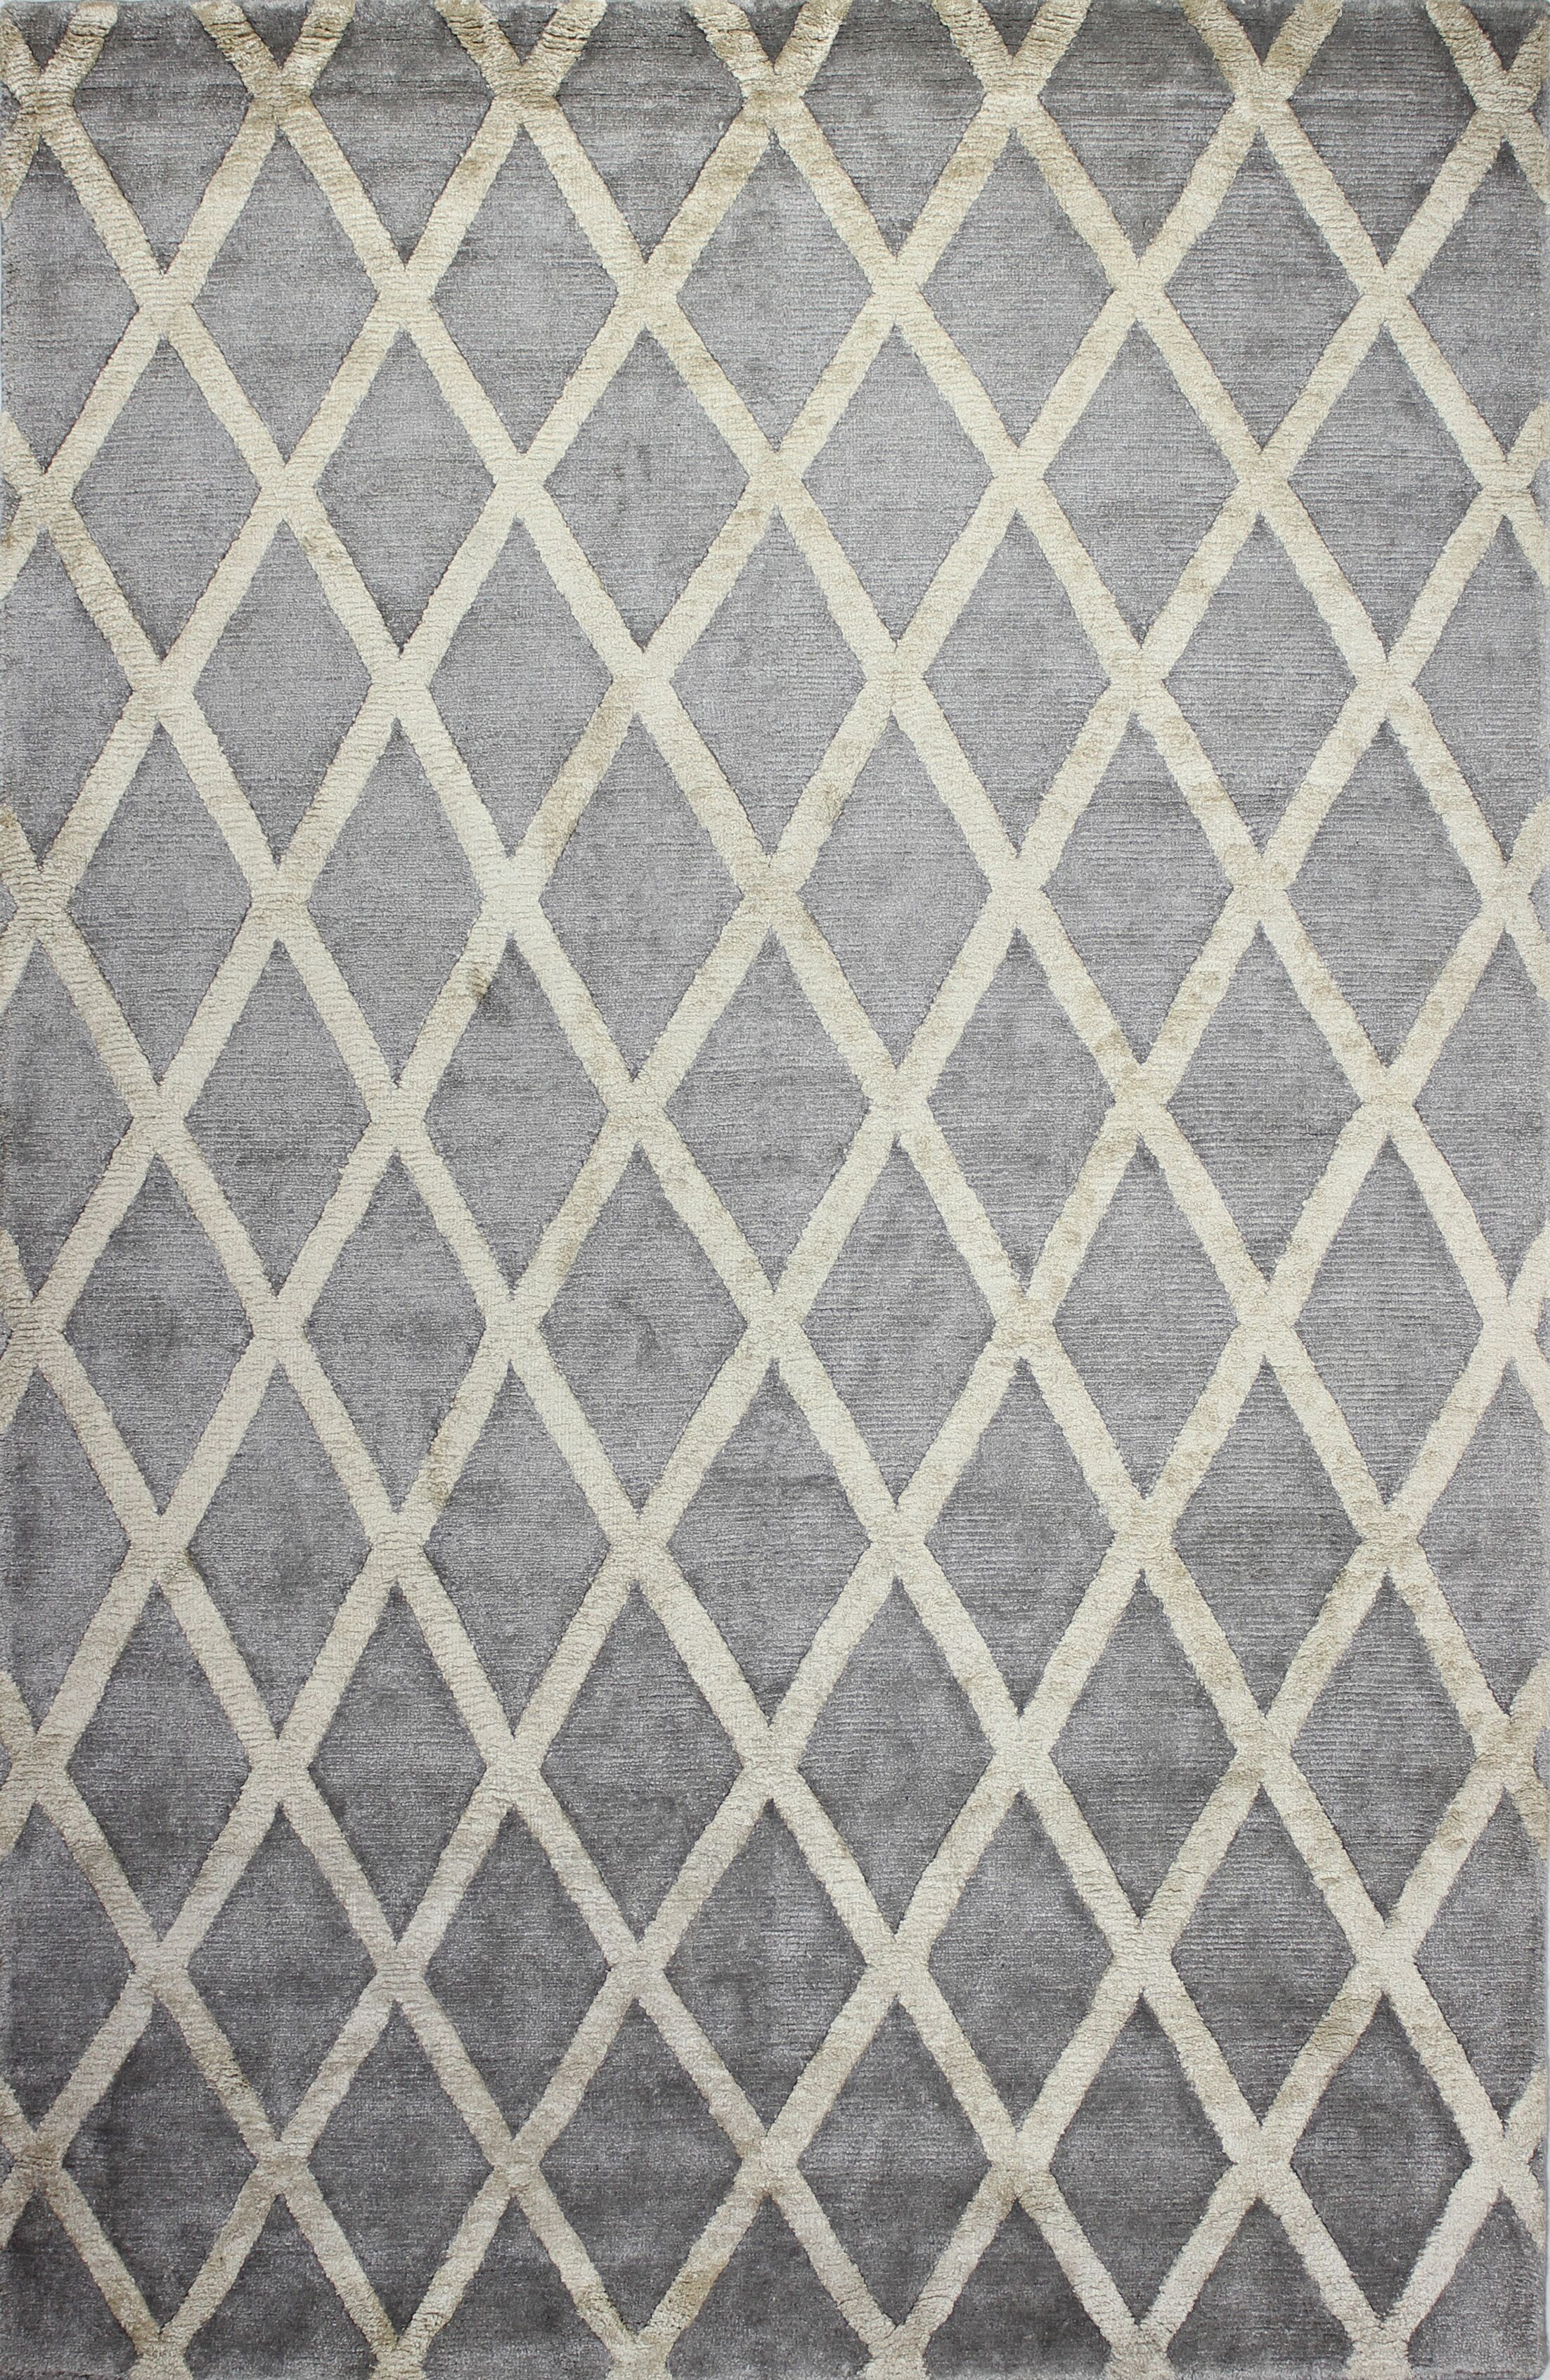 Summerset Hand-Tufted Pewter Area Rug Rug Size: Rectangle 8'6